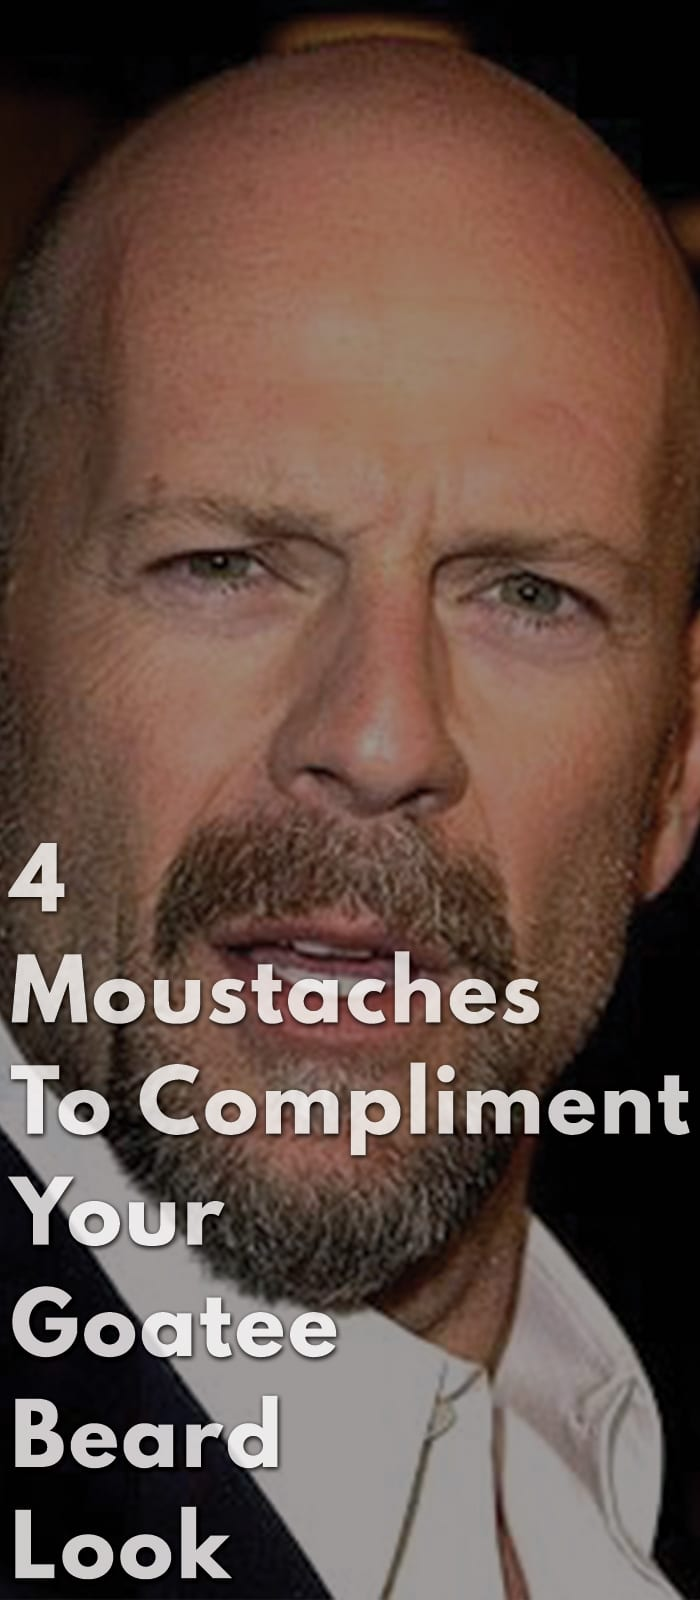 4-Moustaches-To-Compliment-Your-Goatee-Beard-Look